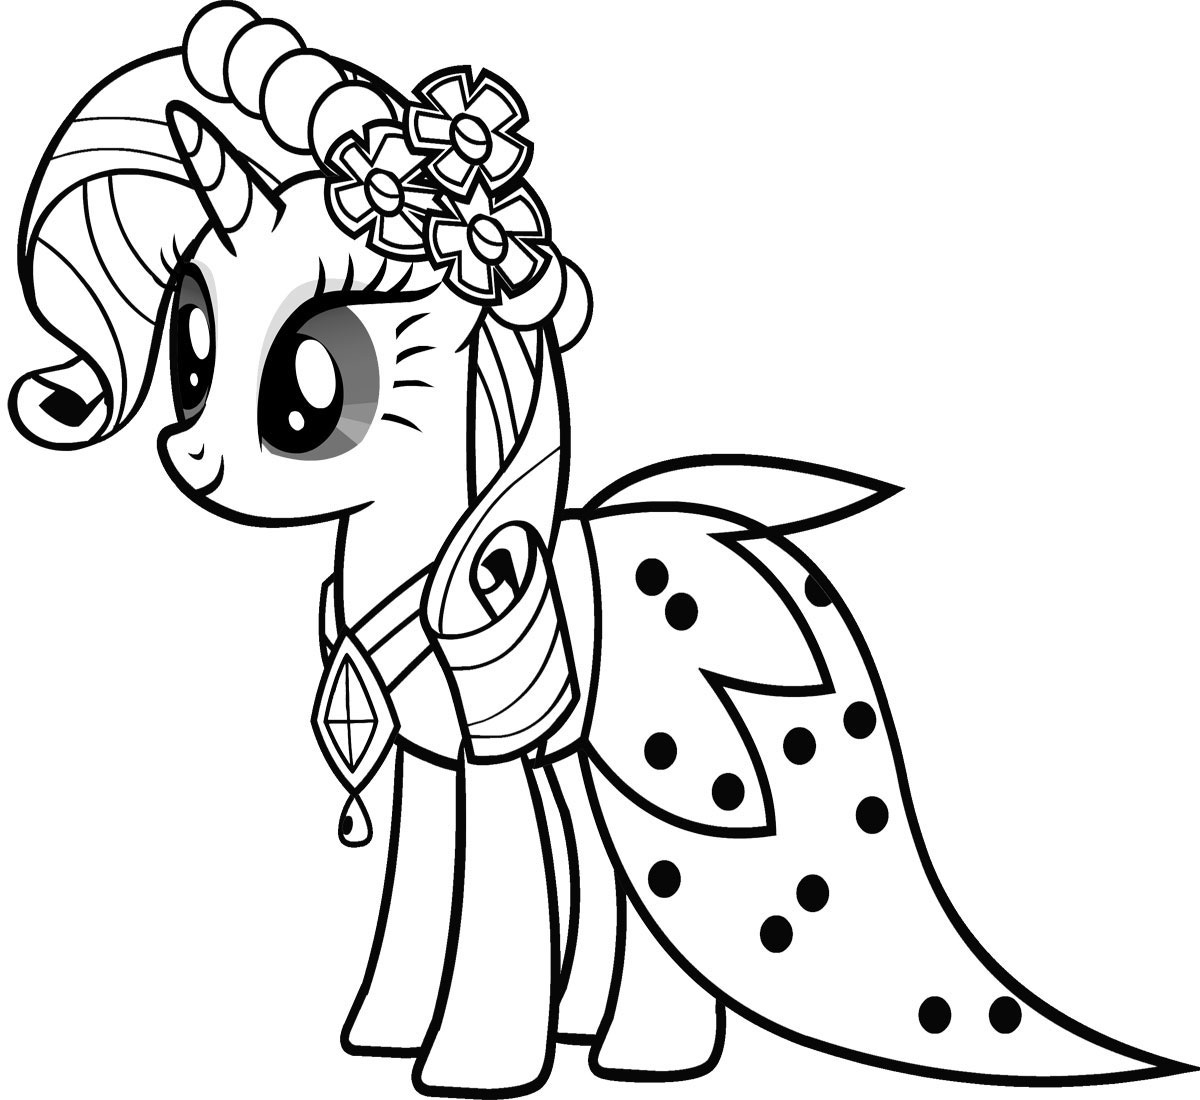 1200x1100 Free Printable My Little Pony Coloring Pages For Kids